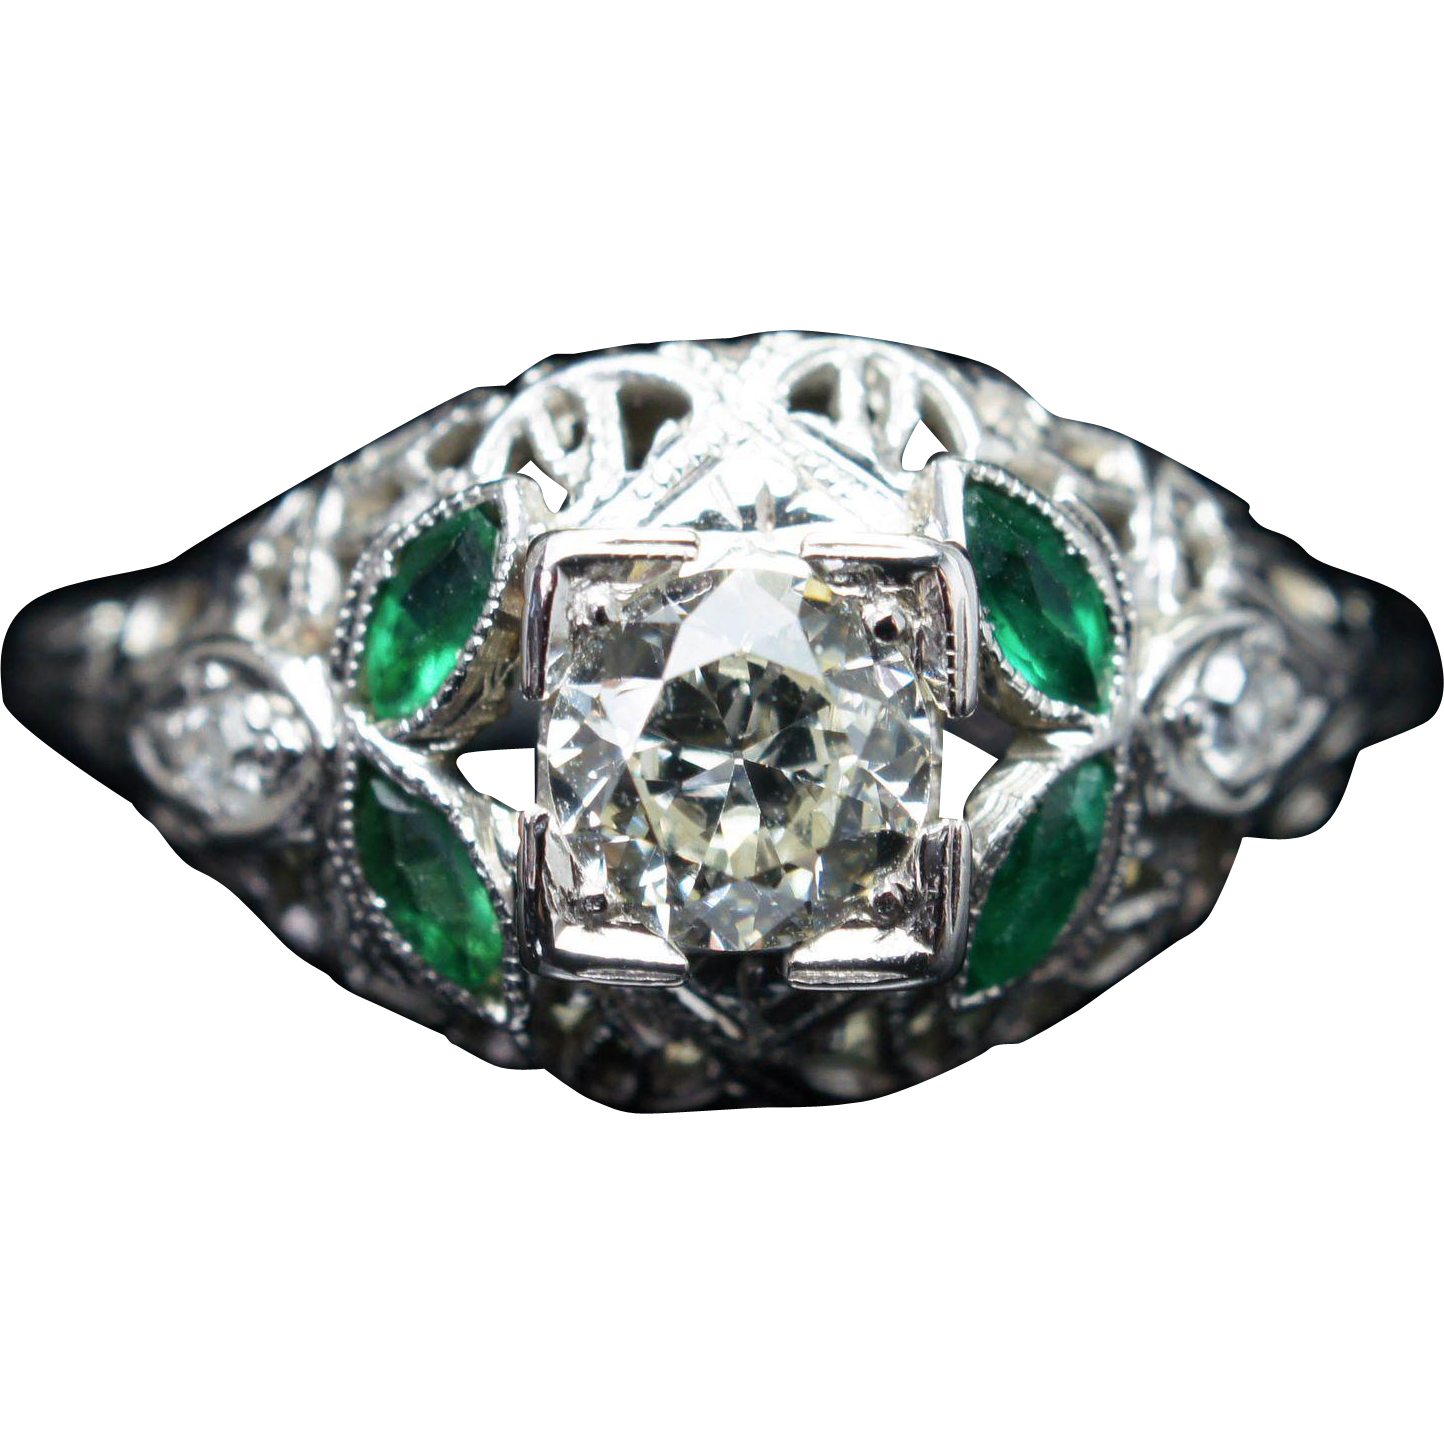 Antique Late Edwardian Diamond & Green Glass Engagement Ring 18k White Gold Jewelry